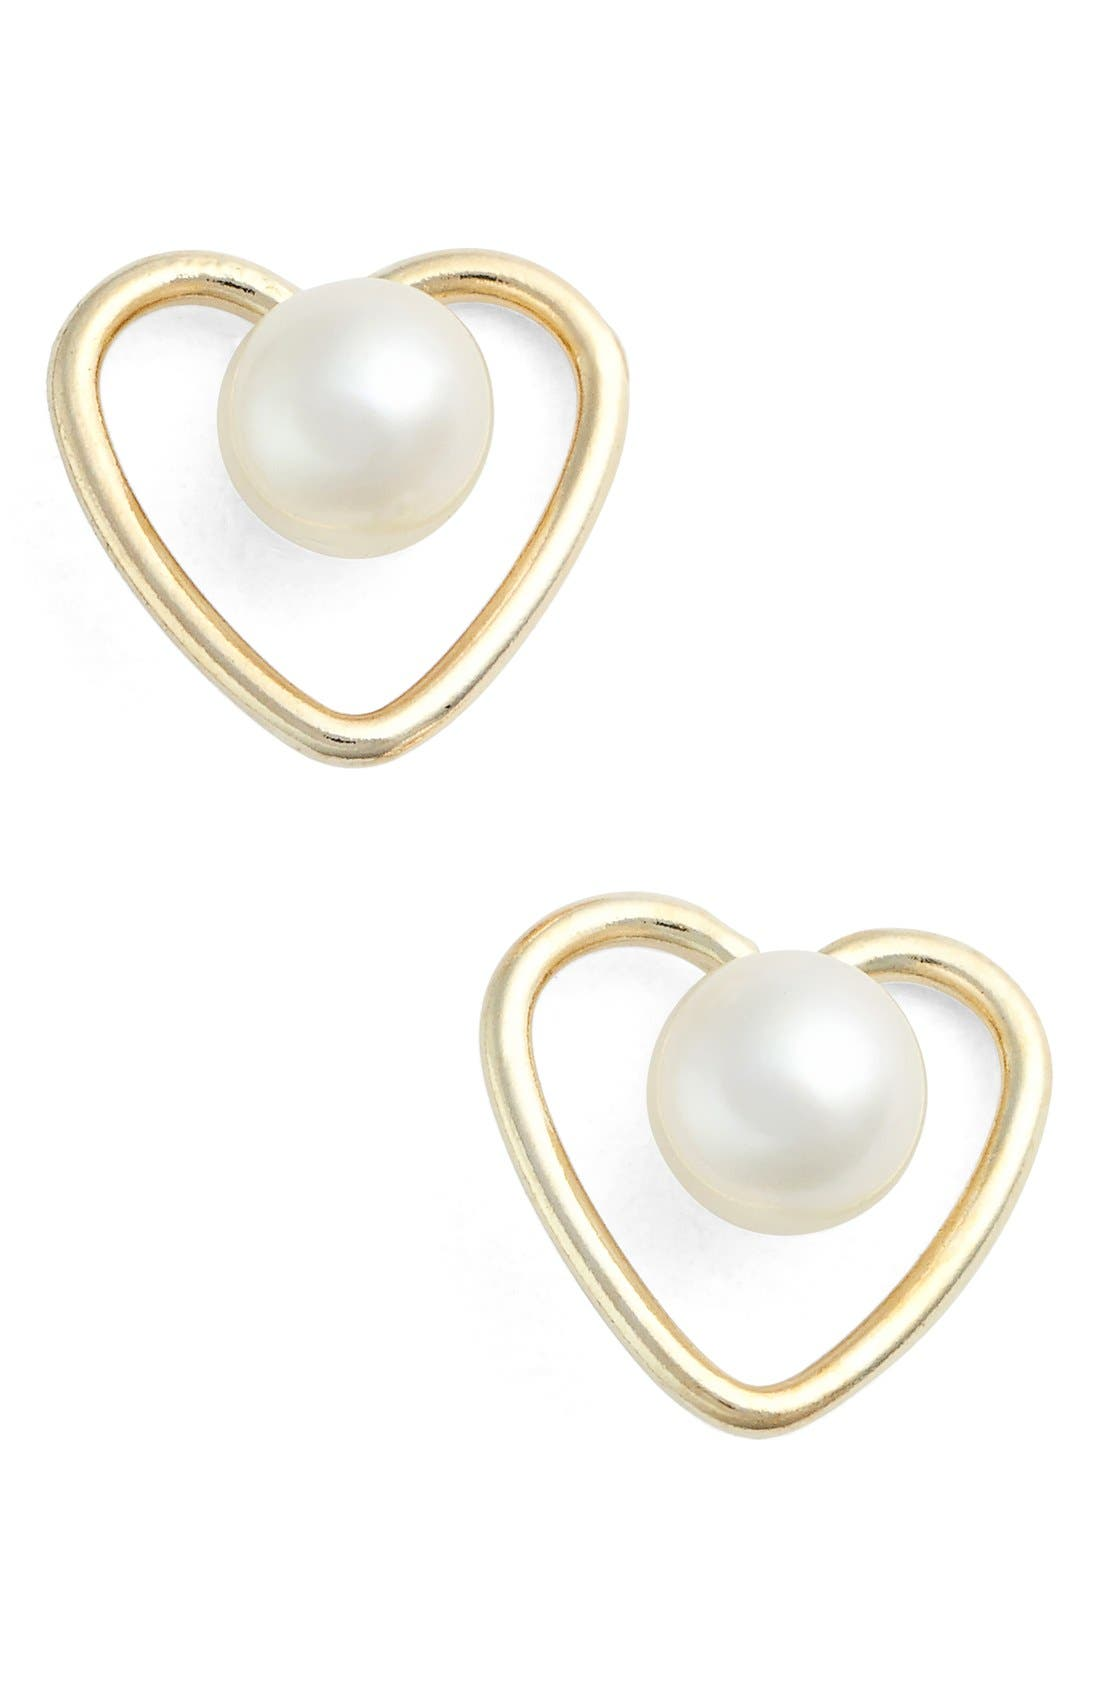 KARDEE JEWELRY Cultured Pearl Heart Earrings